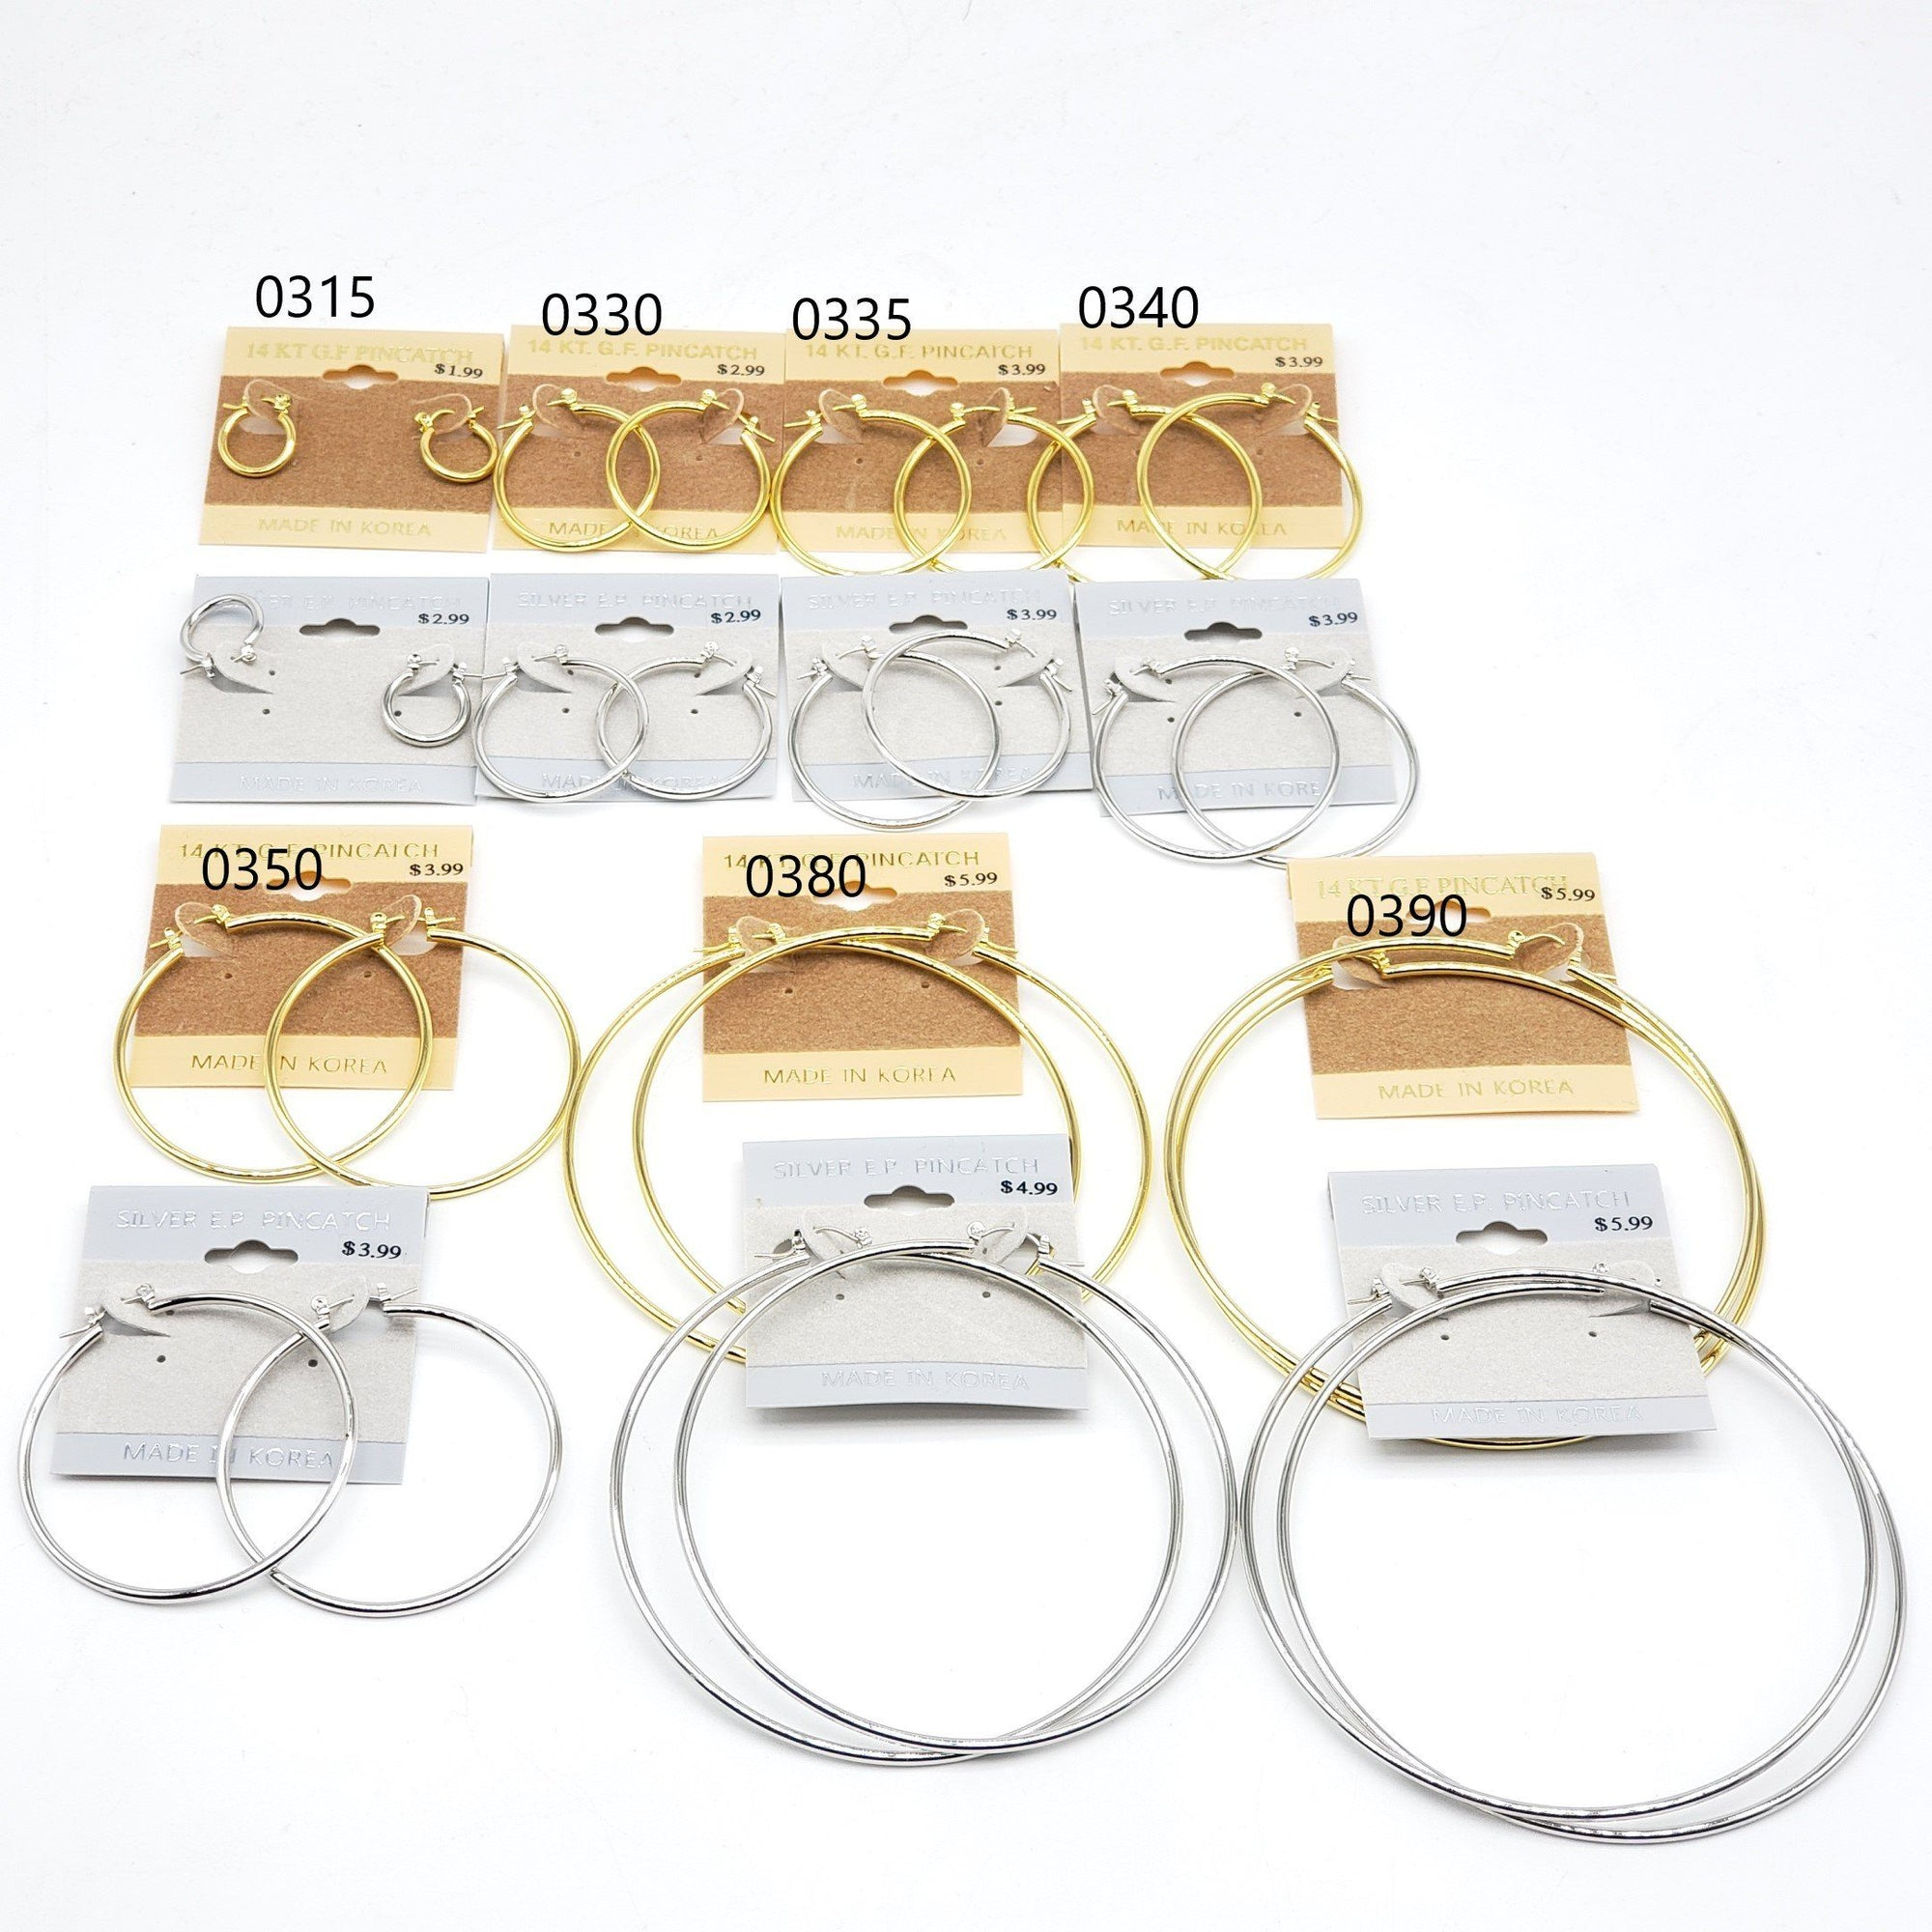 Gold/Silver Hoop Earrings #0315-0330-0335-0340-0350-0380-0390 (PC)